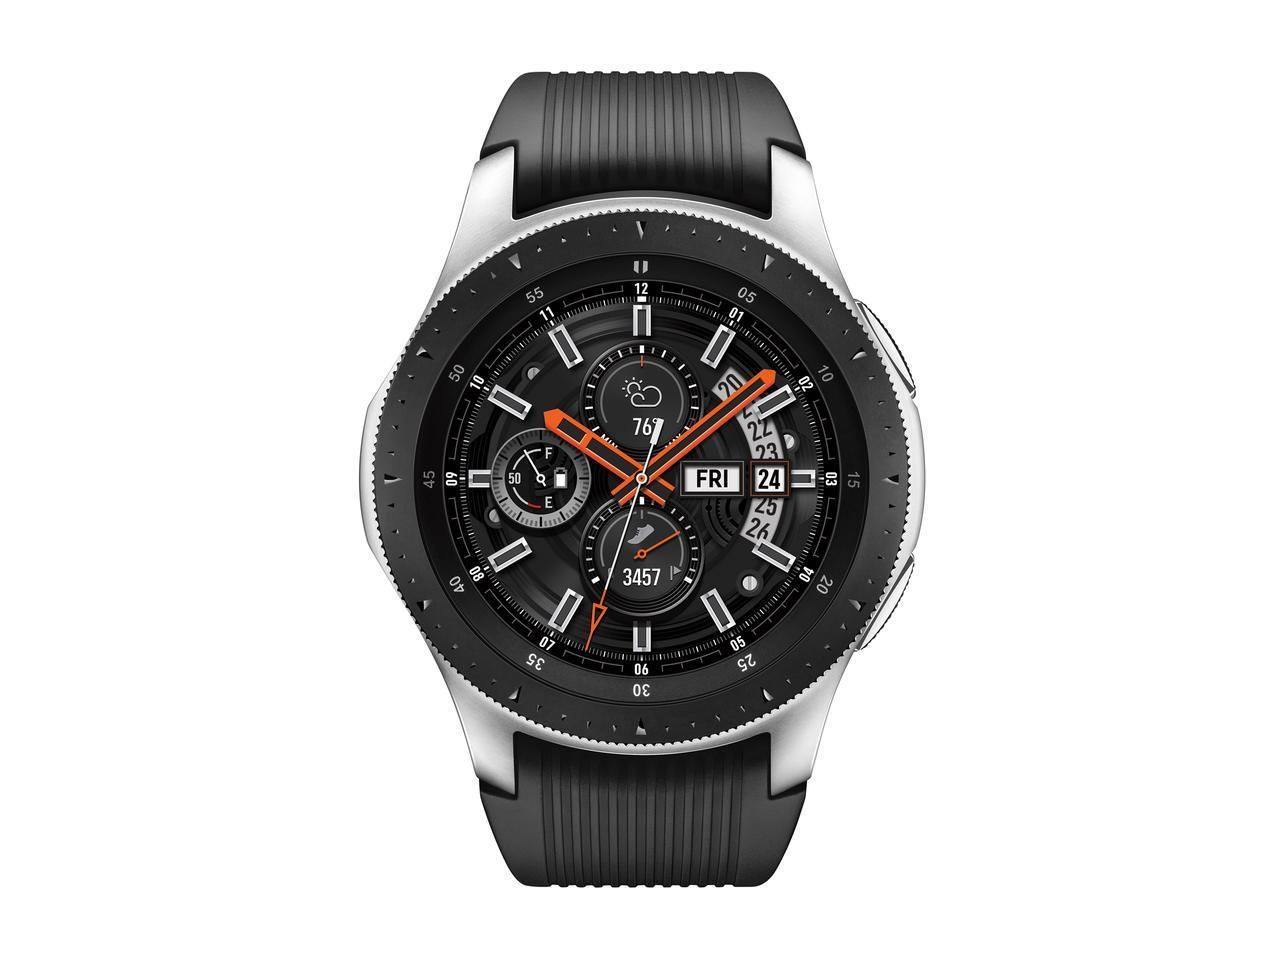 Samsung Galaxy Watch Review: the best Android smartwatch